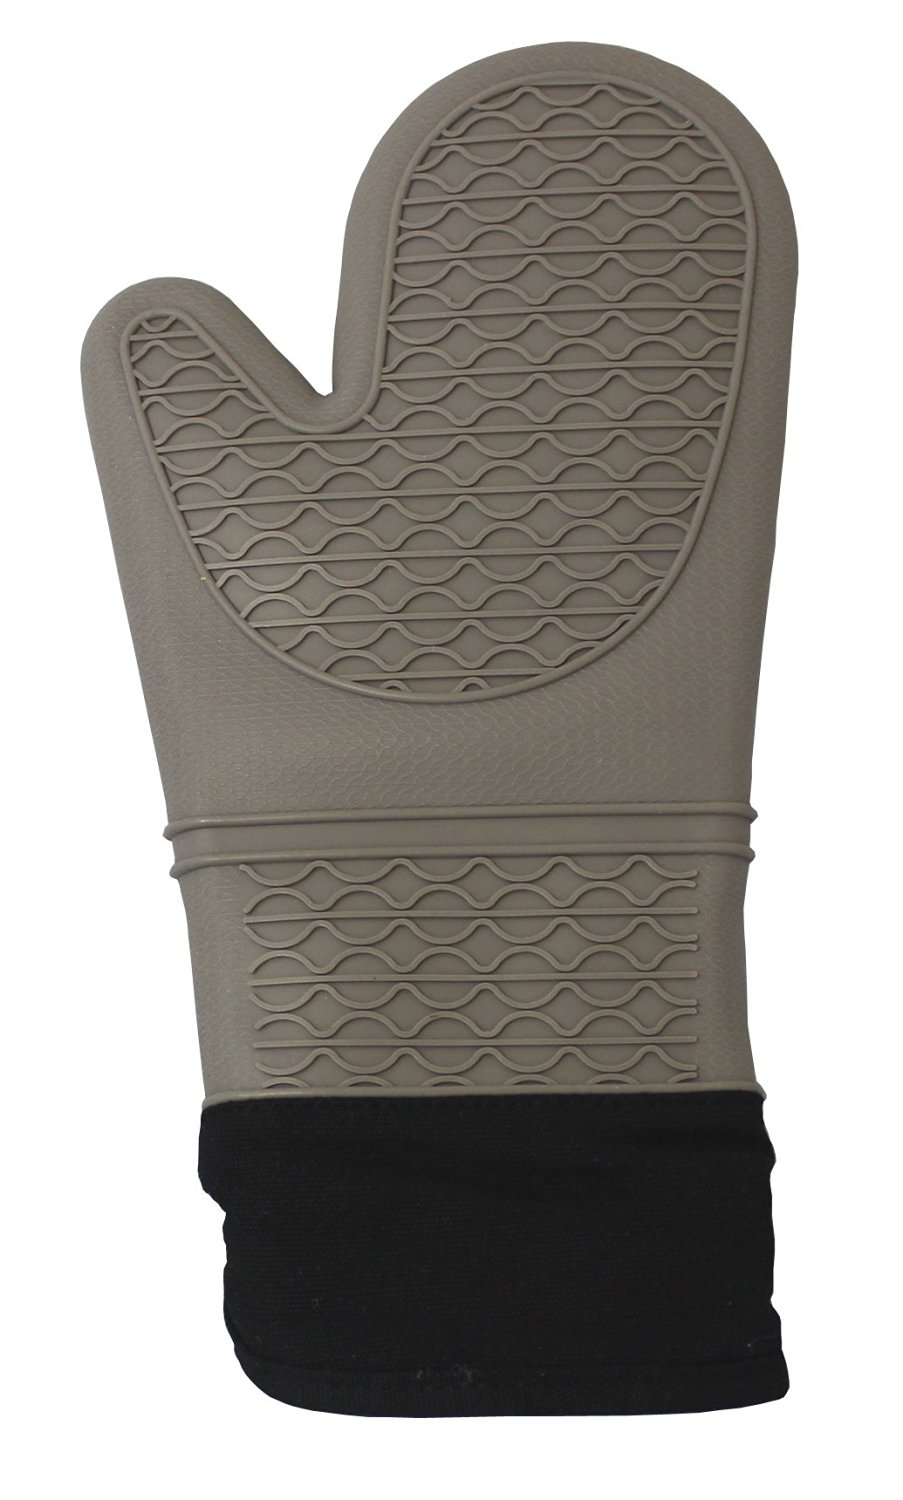 CoastLine Silicone Quilted Professional Oven Mitt Potholder | High-Temperature Heat Resistant Silicone Oven Glove with Extra Grip & Heat Resistant Lining